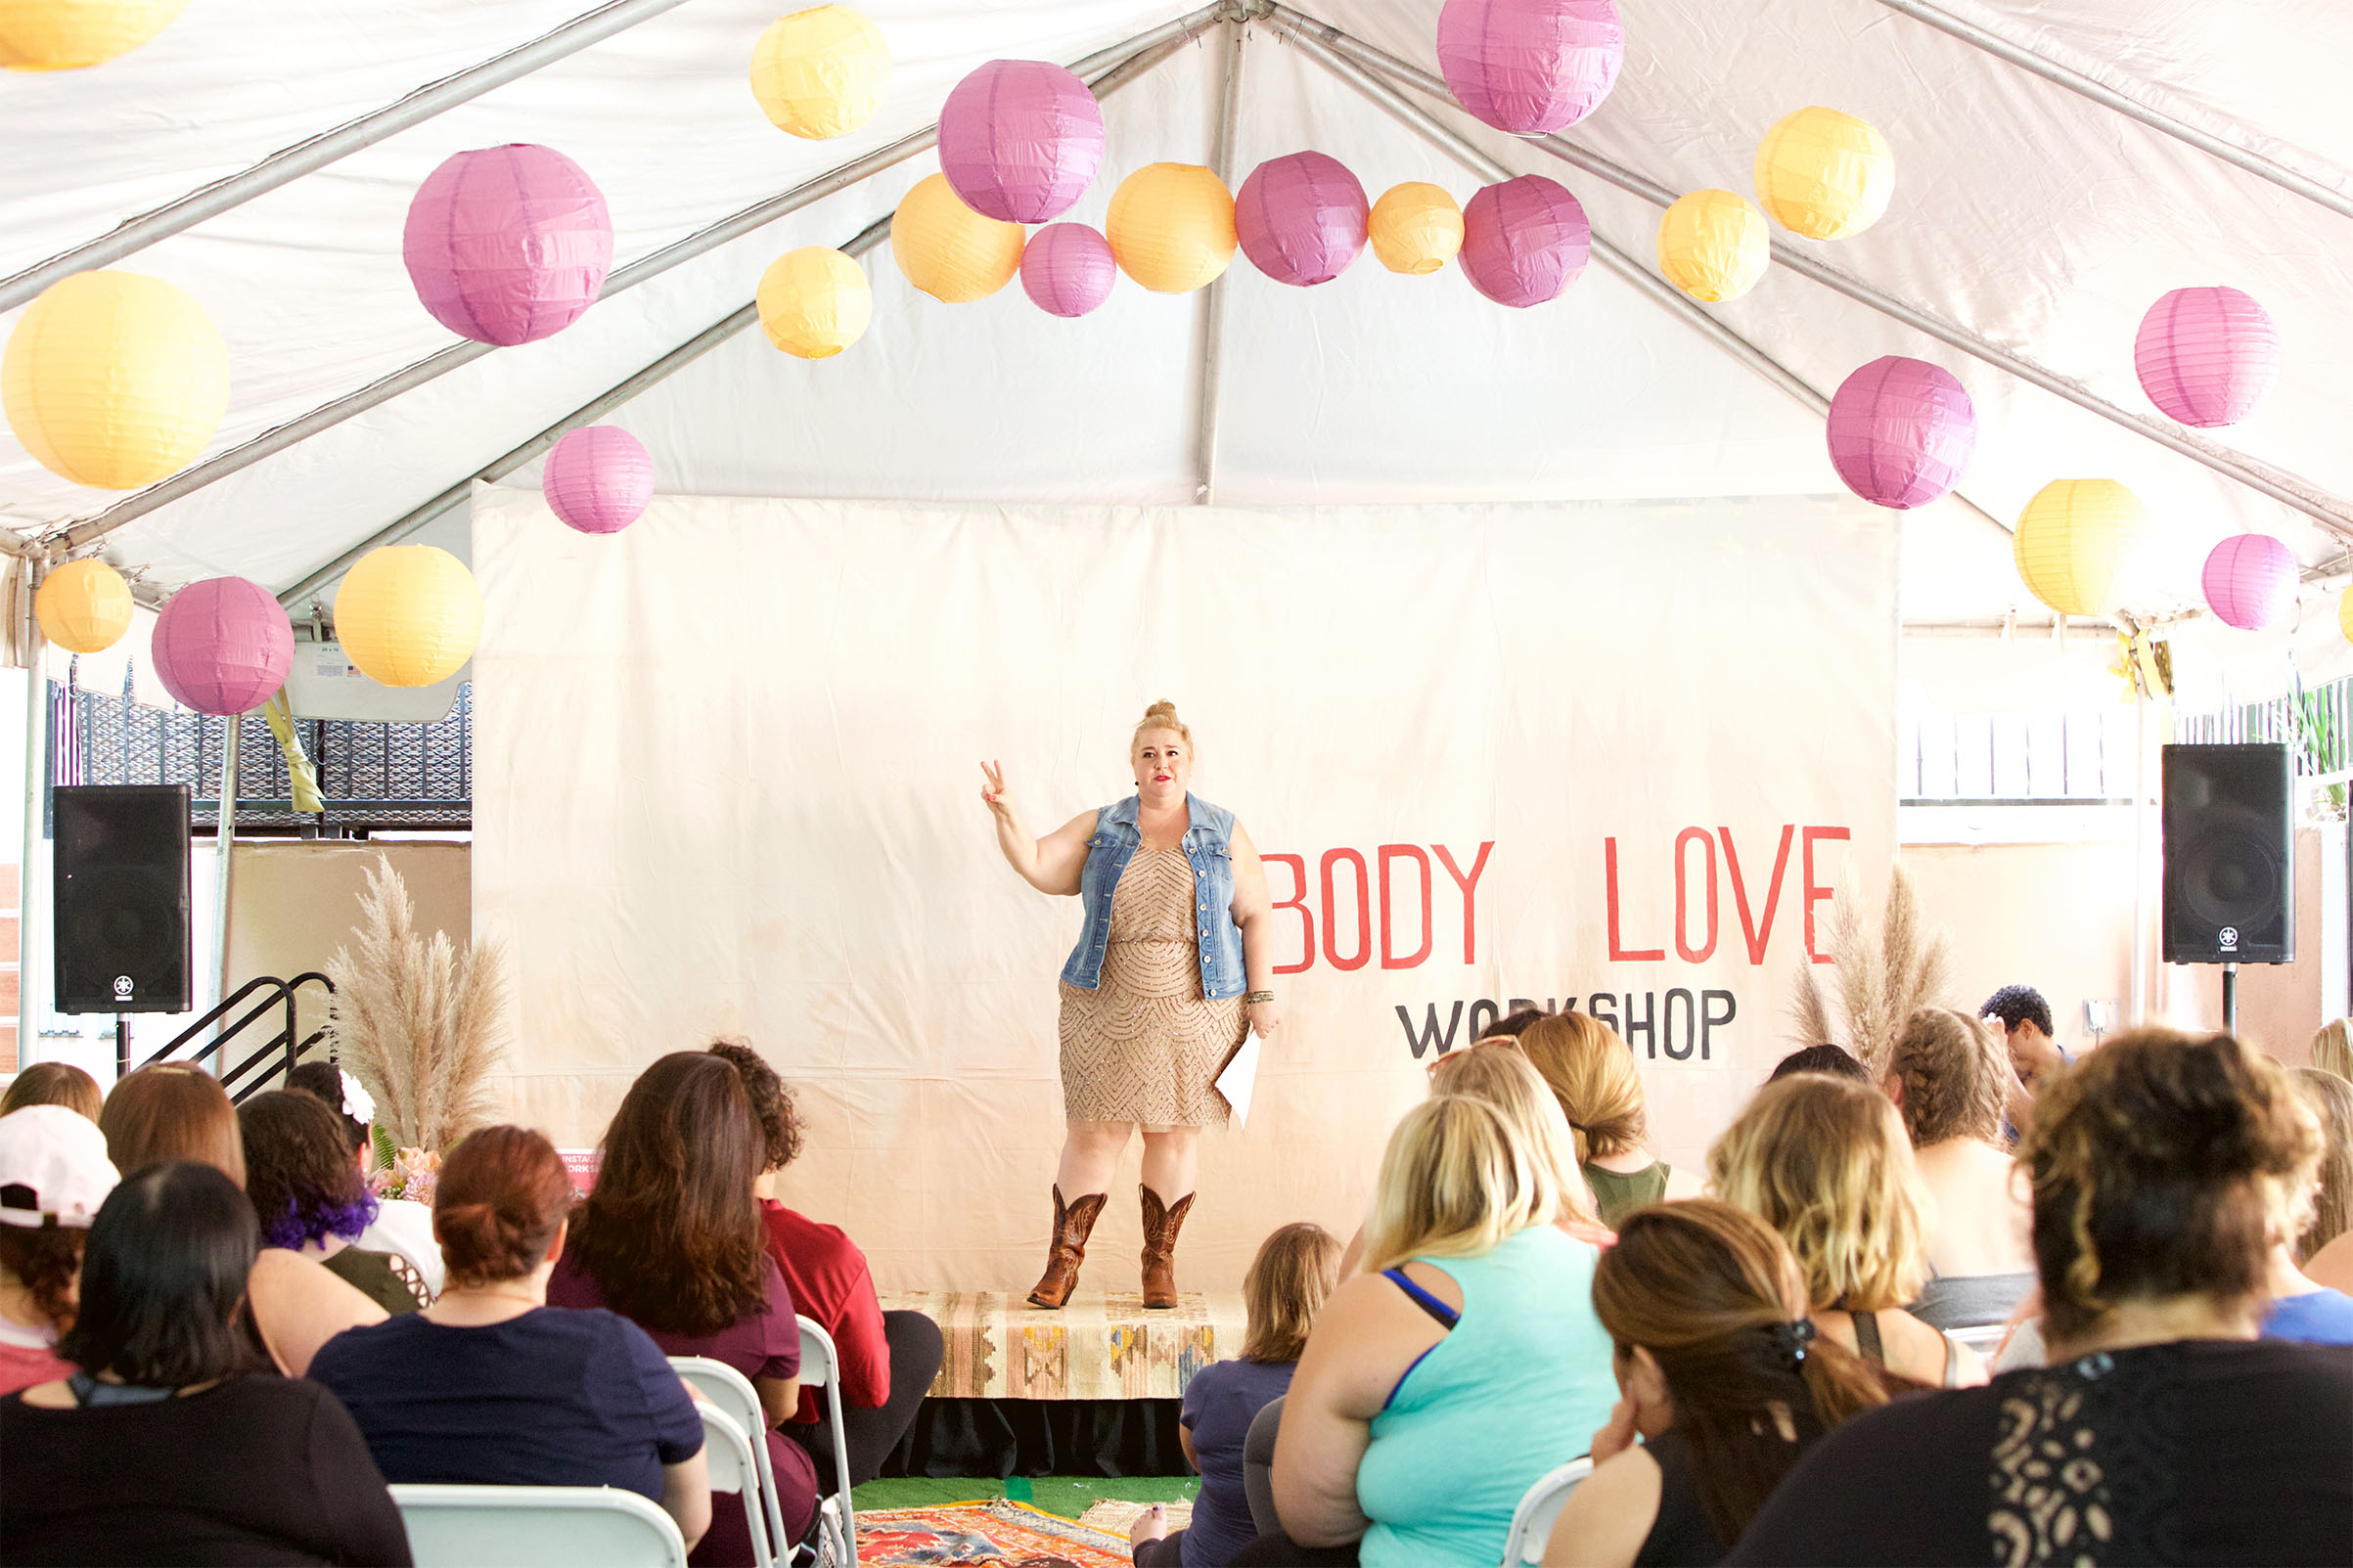 Self-Love Mentor and Wellness Advocate Sarah Sapora speaks at a Body Love workshop.